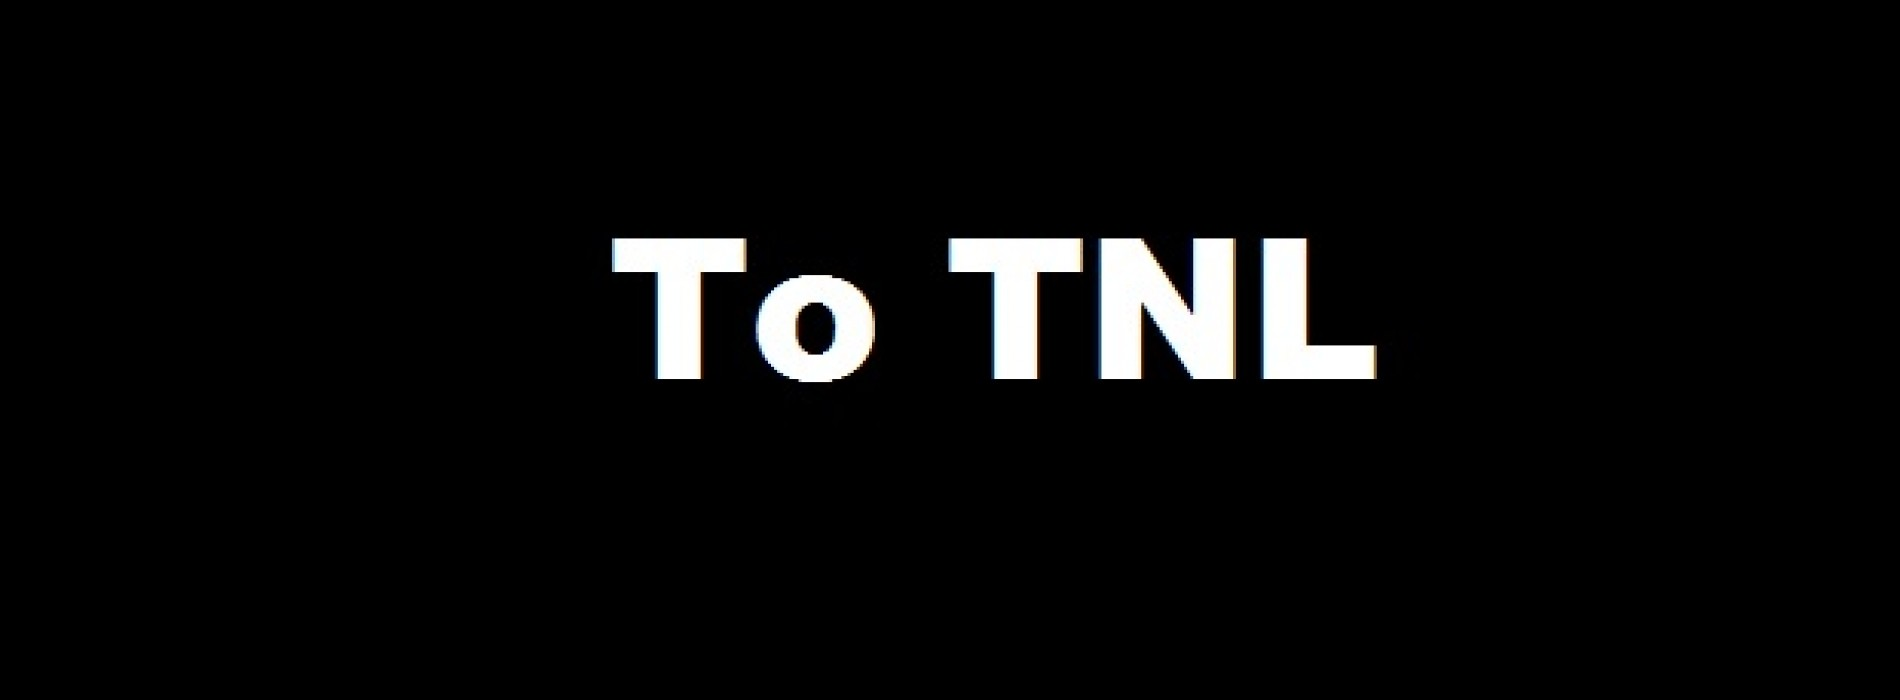 Our Open Letter To The Management Of TNL